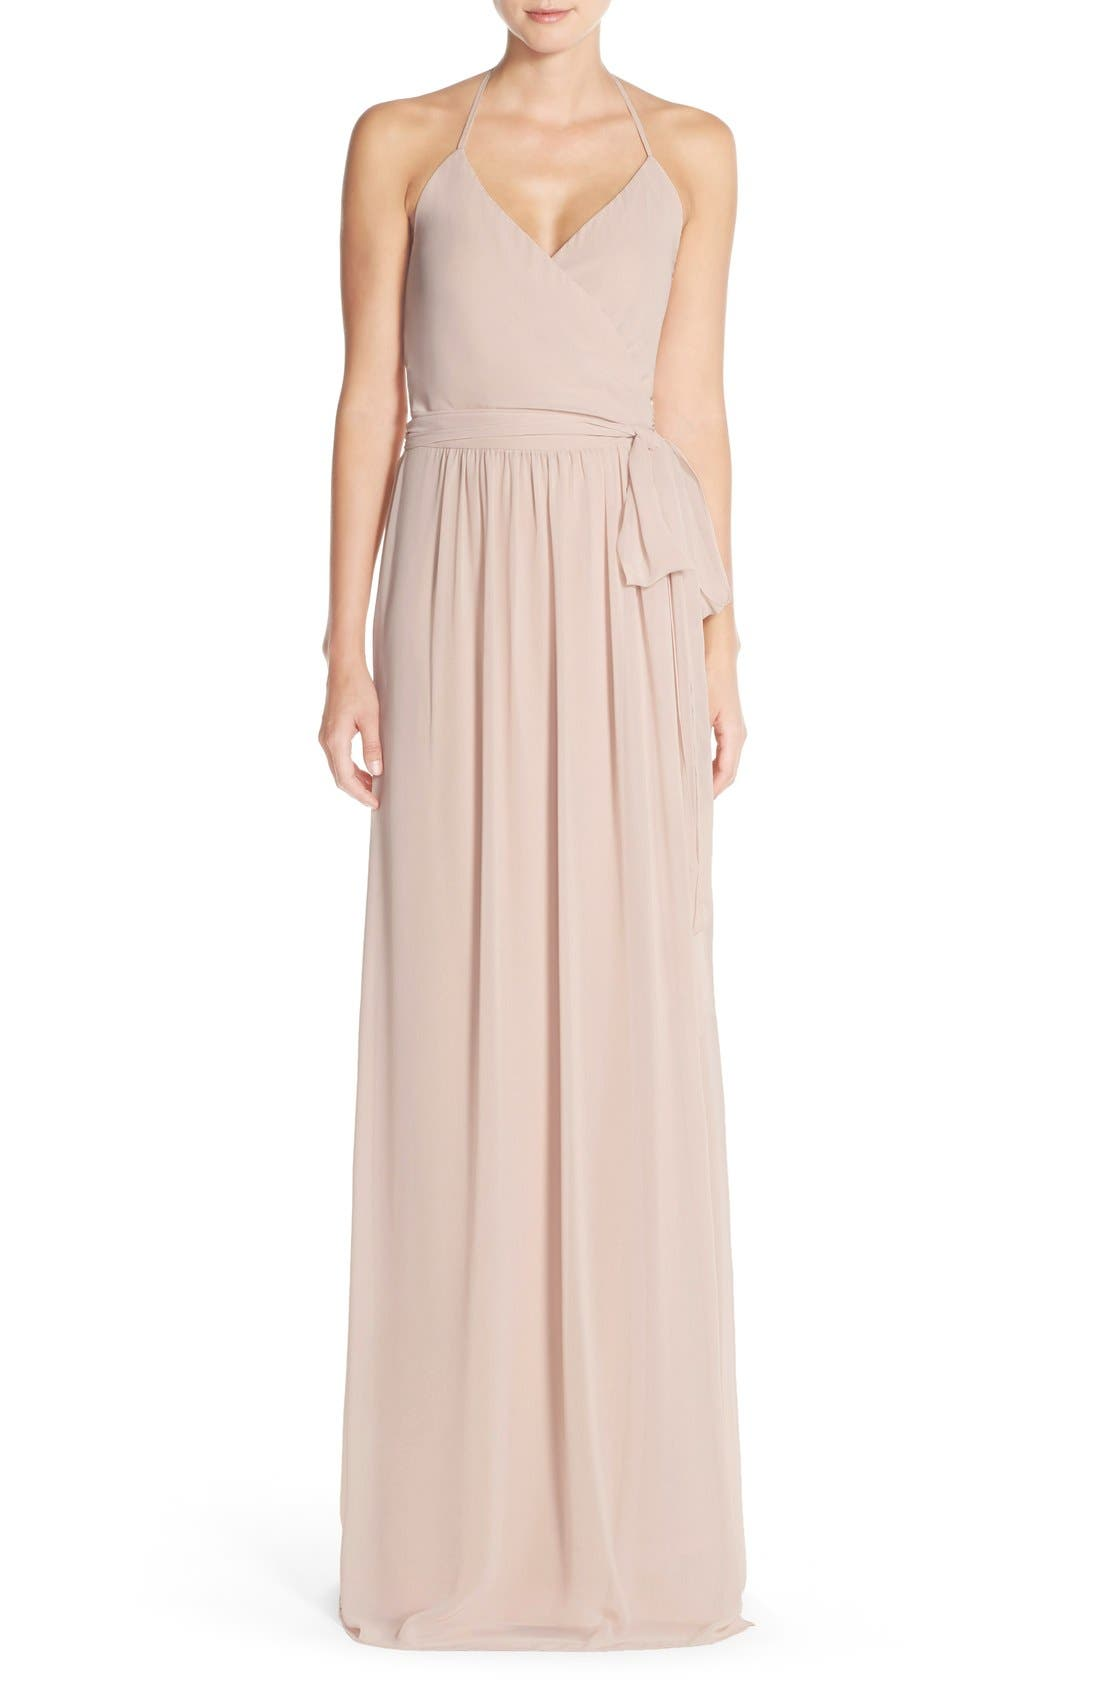 Ceremony by Joanna August 'DC' Halter Wrap Chiffon Gown